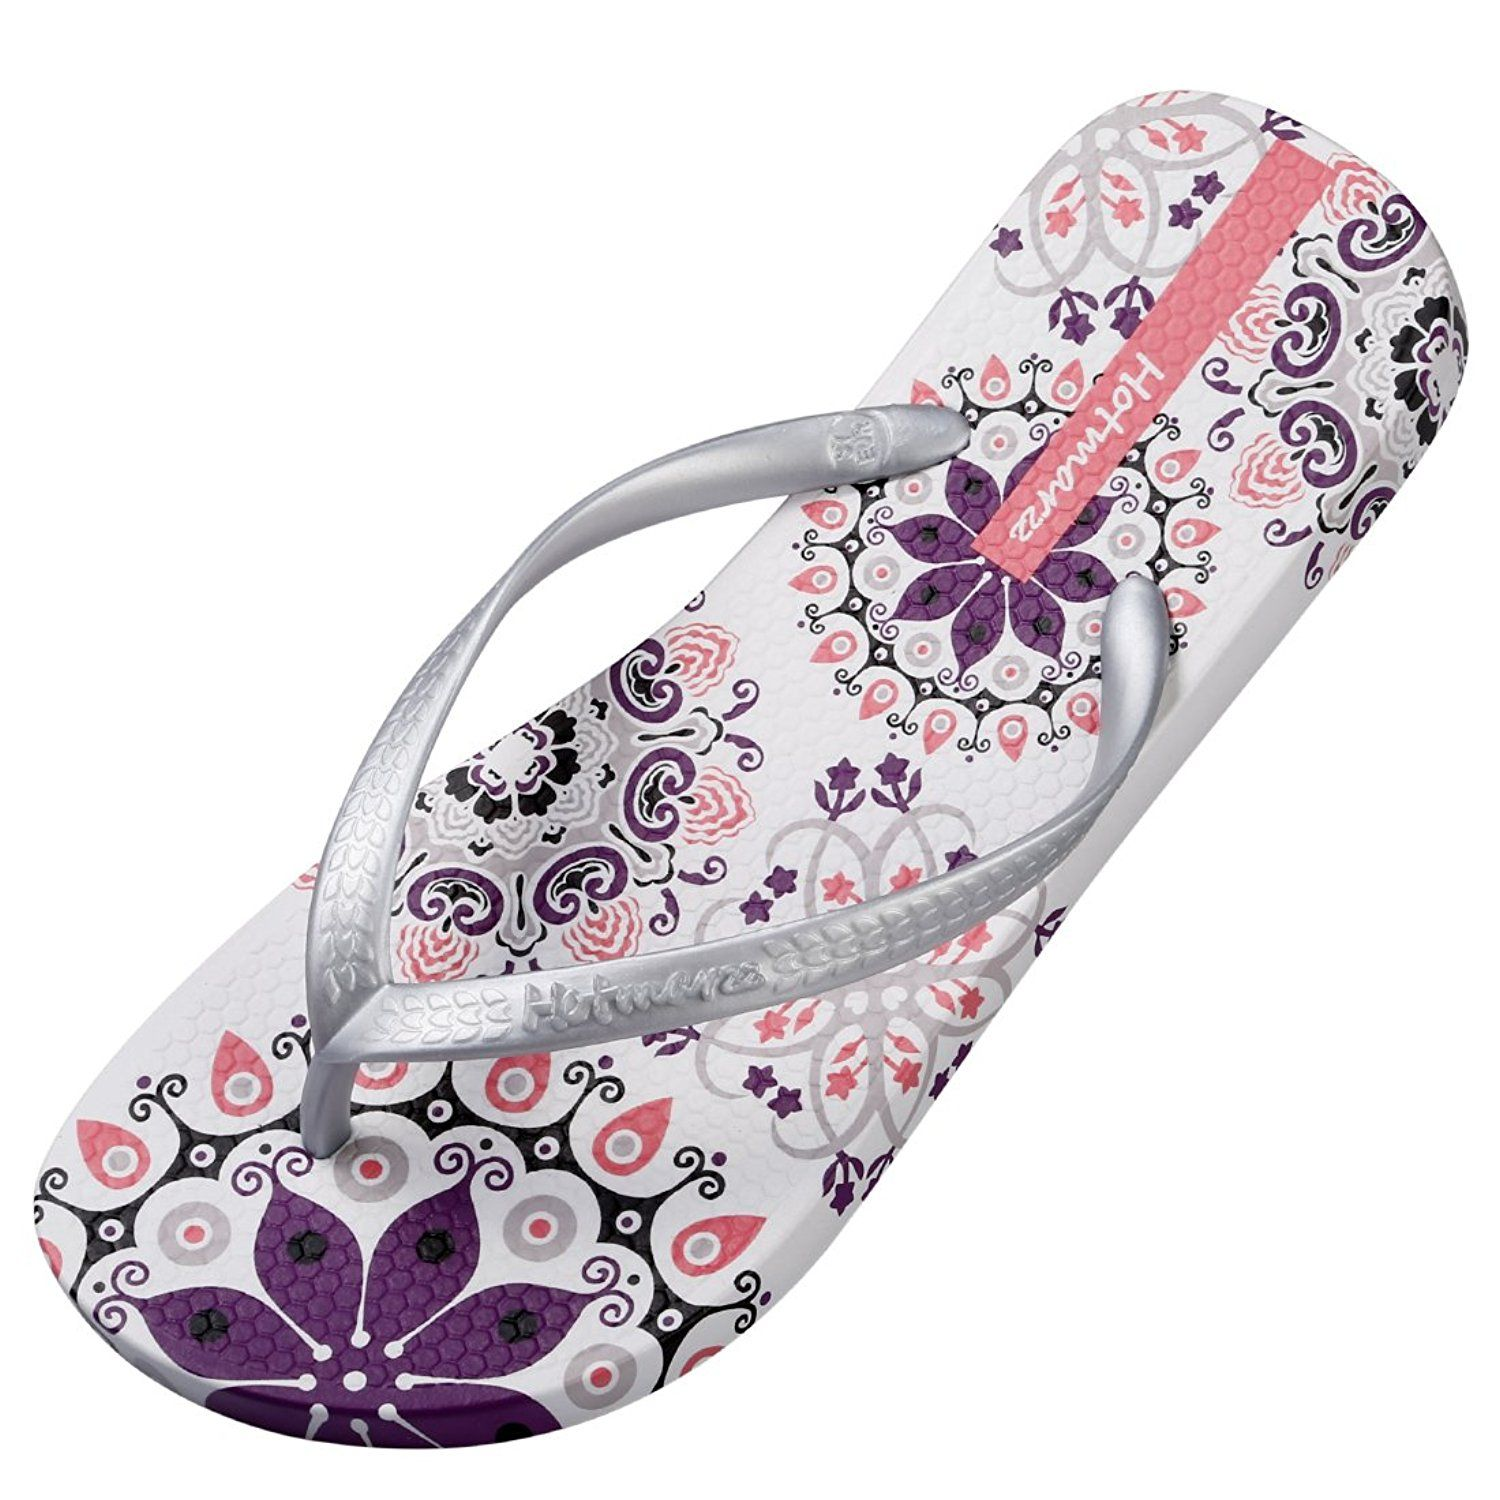 dd3b5bf0c33f0b Hotmarzz Women s Flip Flops Bohemia Floral Print Sandals Beach Slippers --  Click image to review more details. (This is an affiliate link)  womenshoe